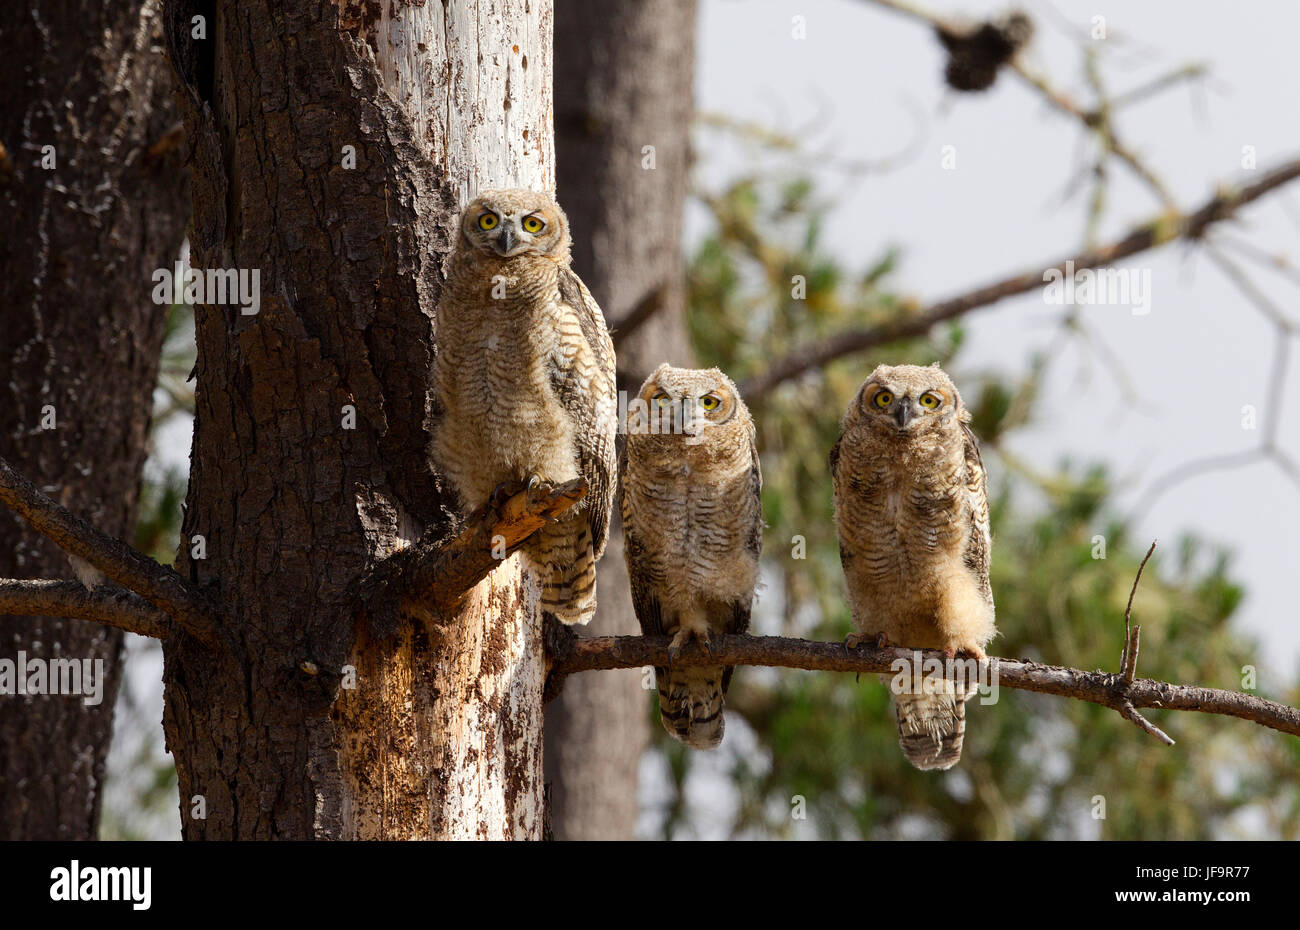 Three Great Horned Owl Fledglings - Stock Image